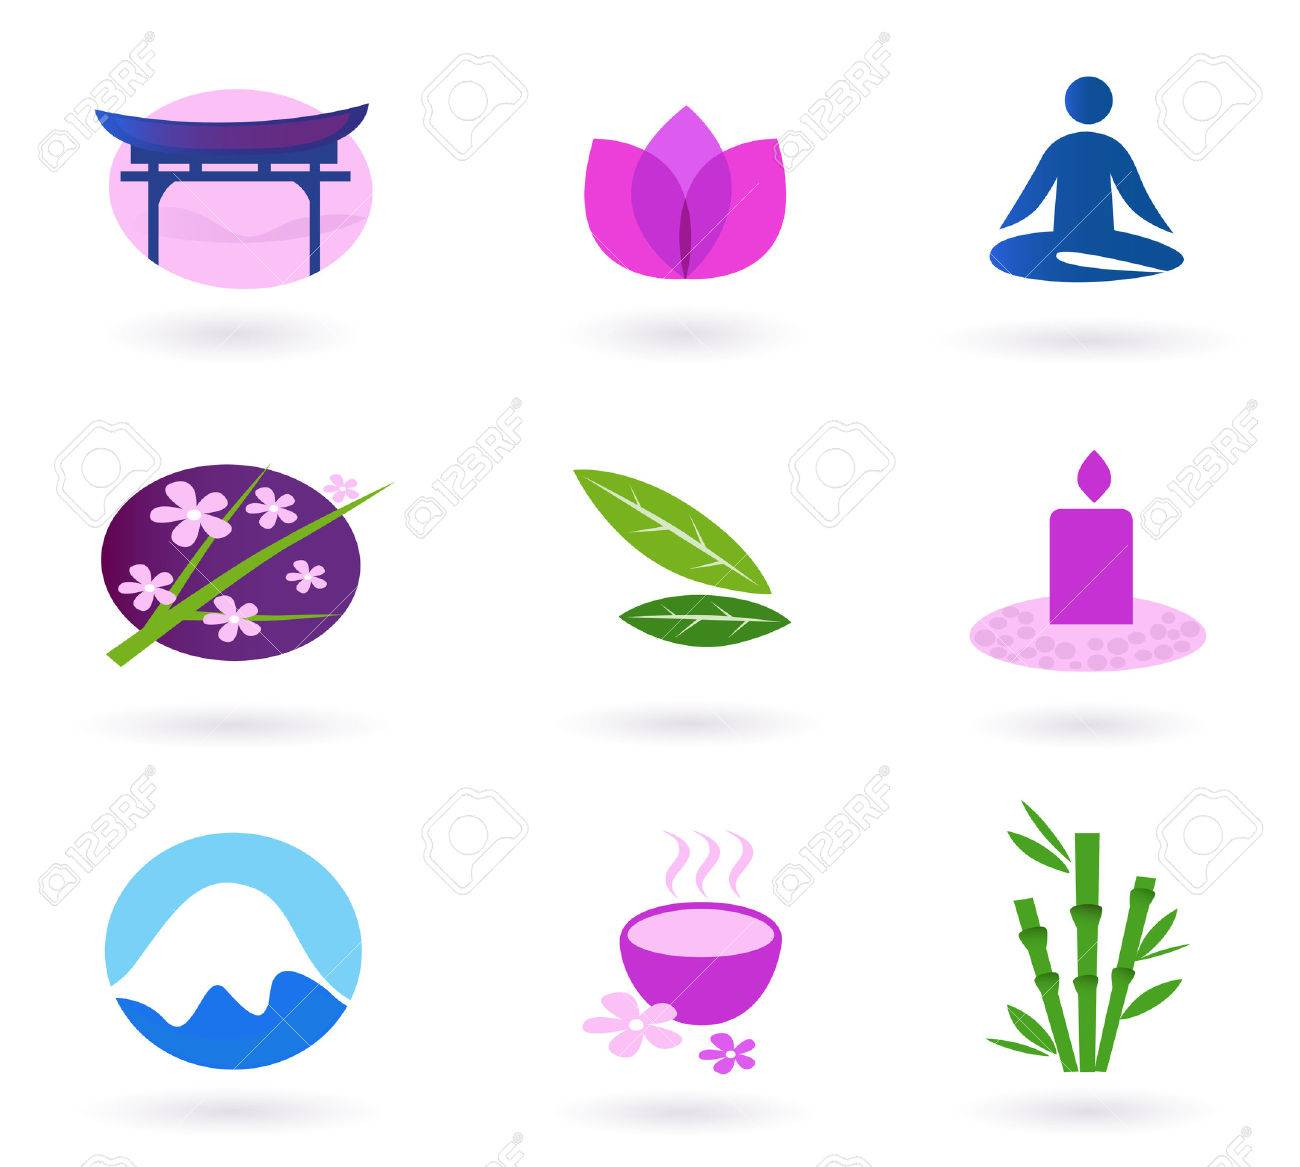 Wellness, relaxation and yoga icon set. Stock Vector - 7317852